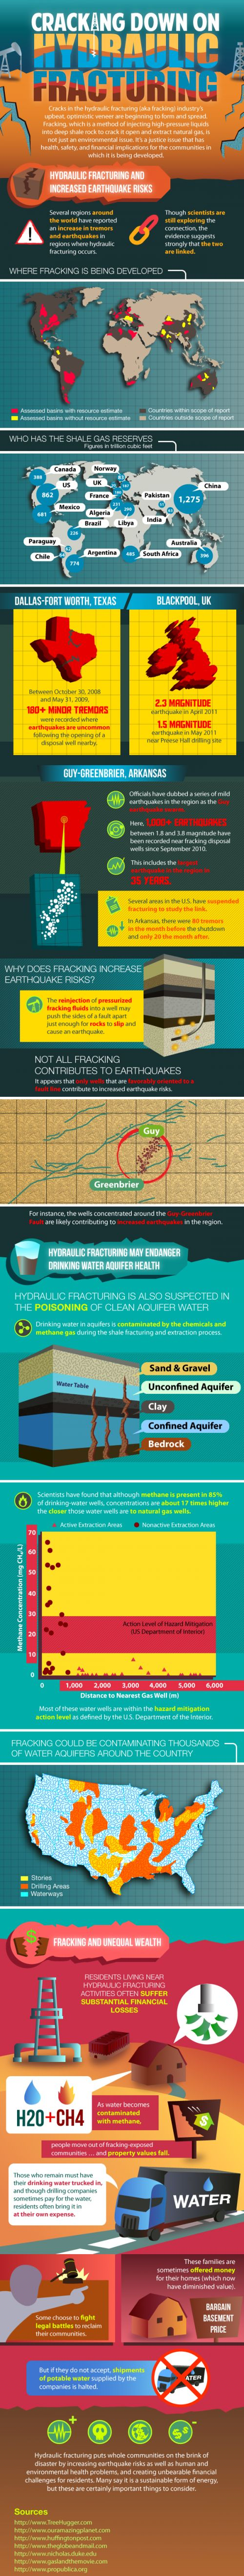 Infographic: Cracking down on hydraulic fracturing.